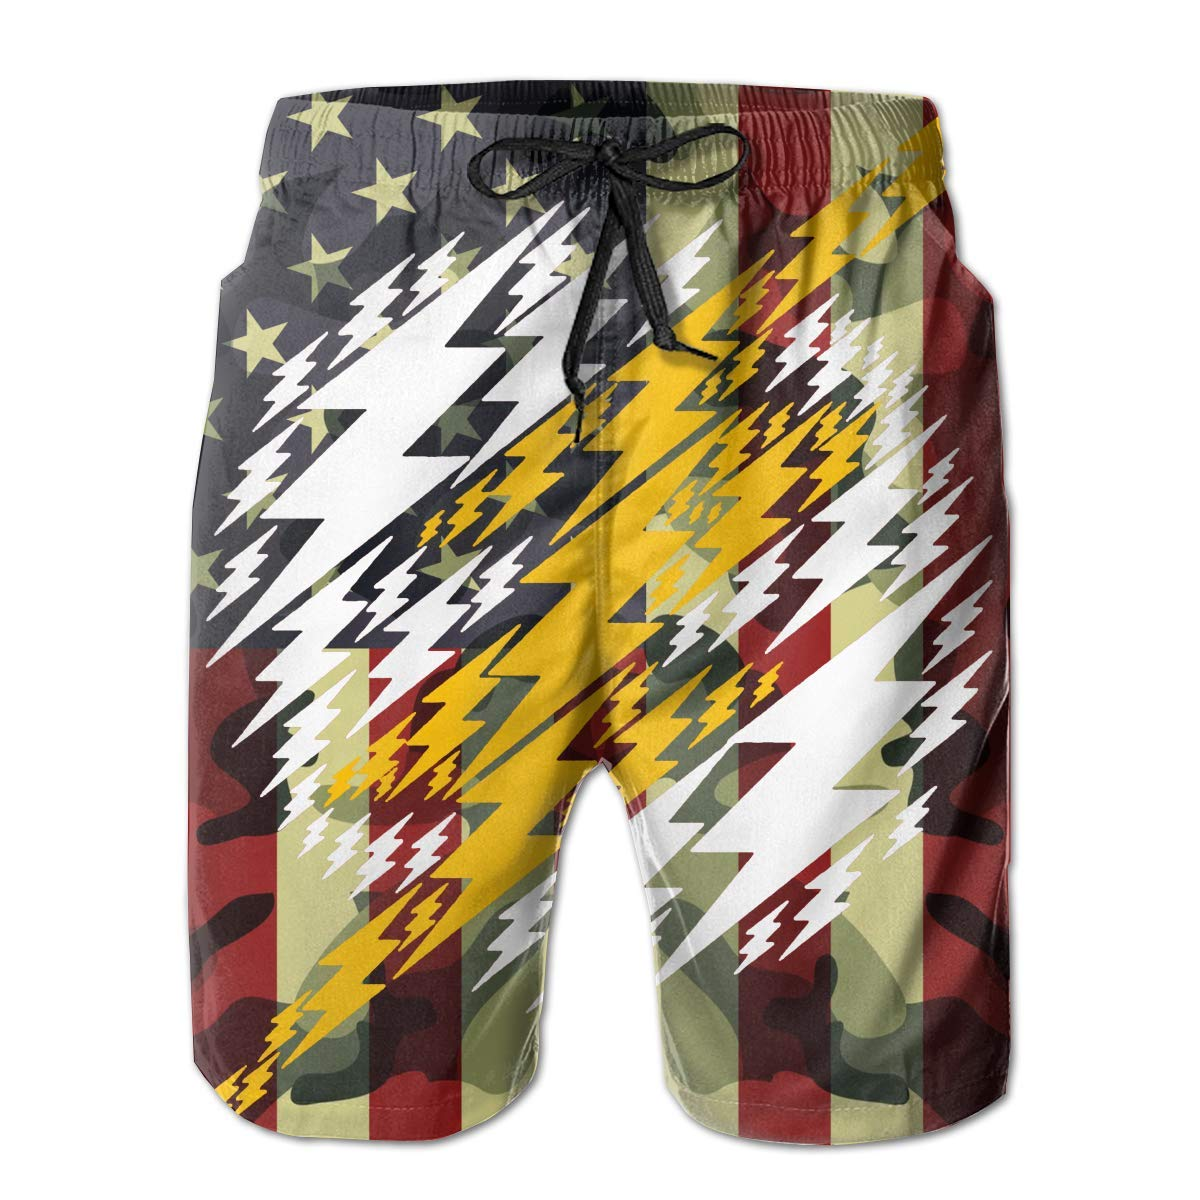 DDYJ Meta Flash Boardshorts Mens Swimtrunks Fashion Beach Shorts Casual Shorts Swim Trunks